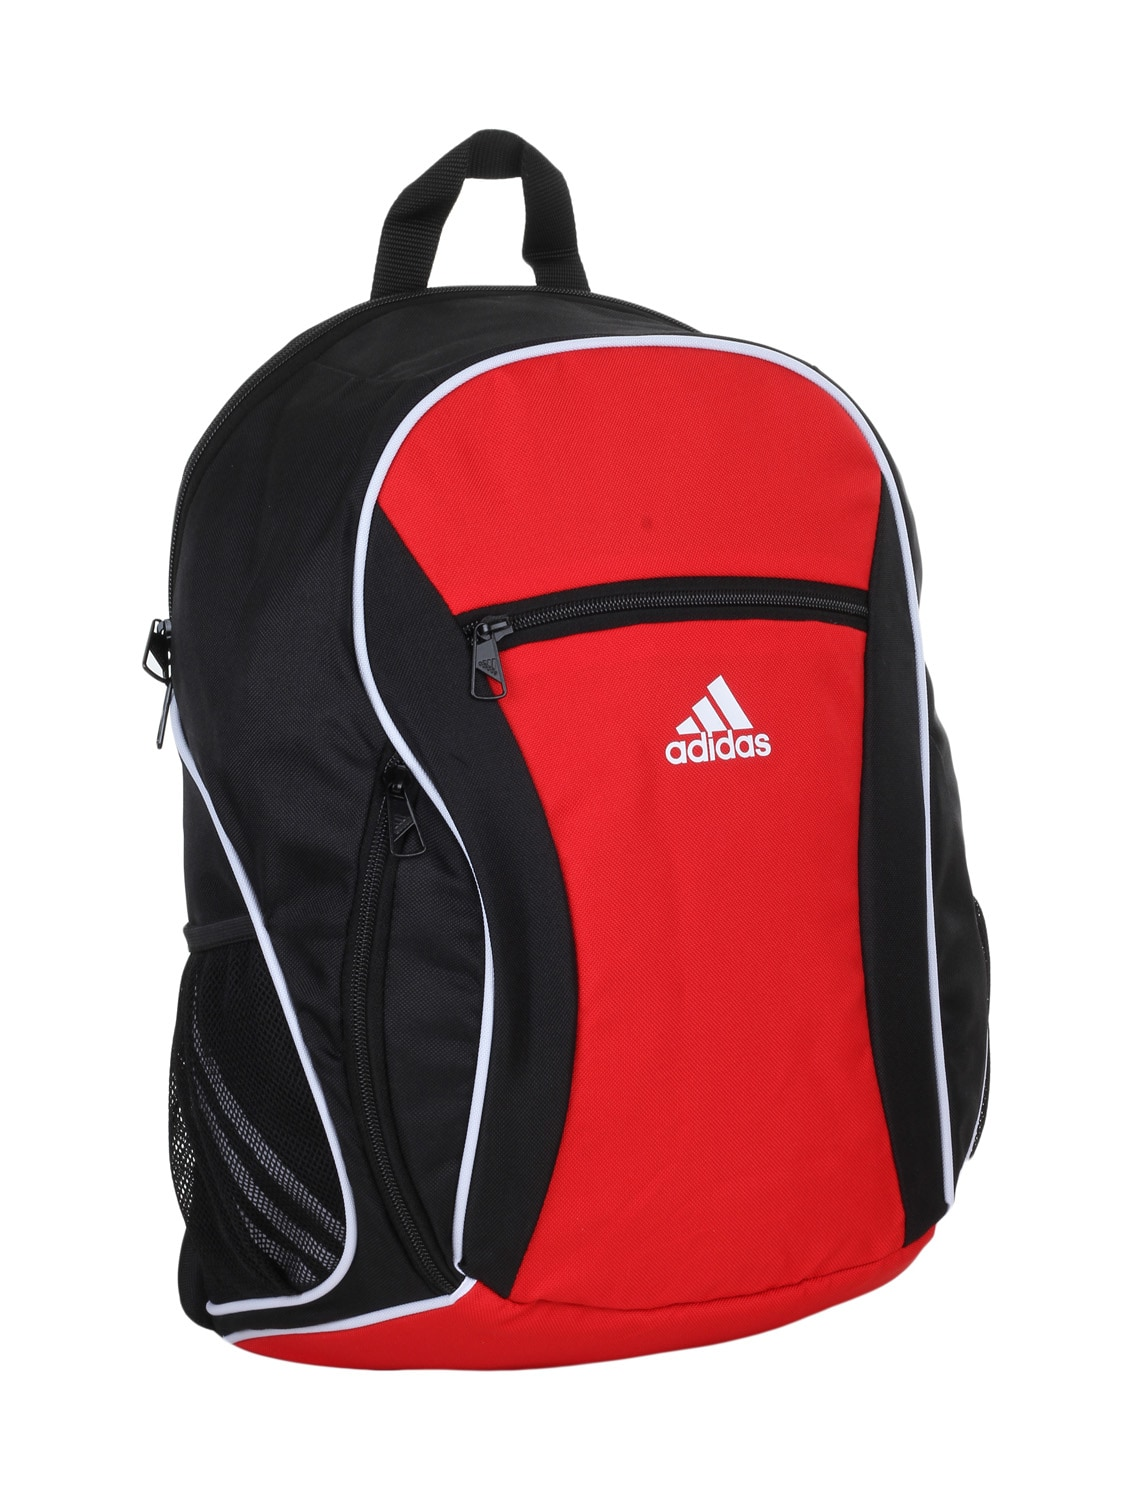 eab2a01c74a Buy Black Canvas Backpack by Adidas - Online shopping for Backpacks ...